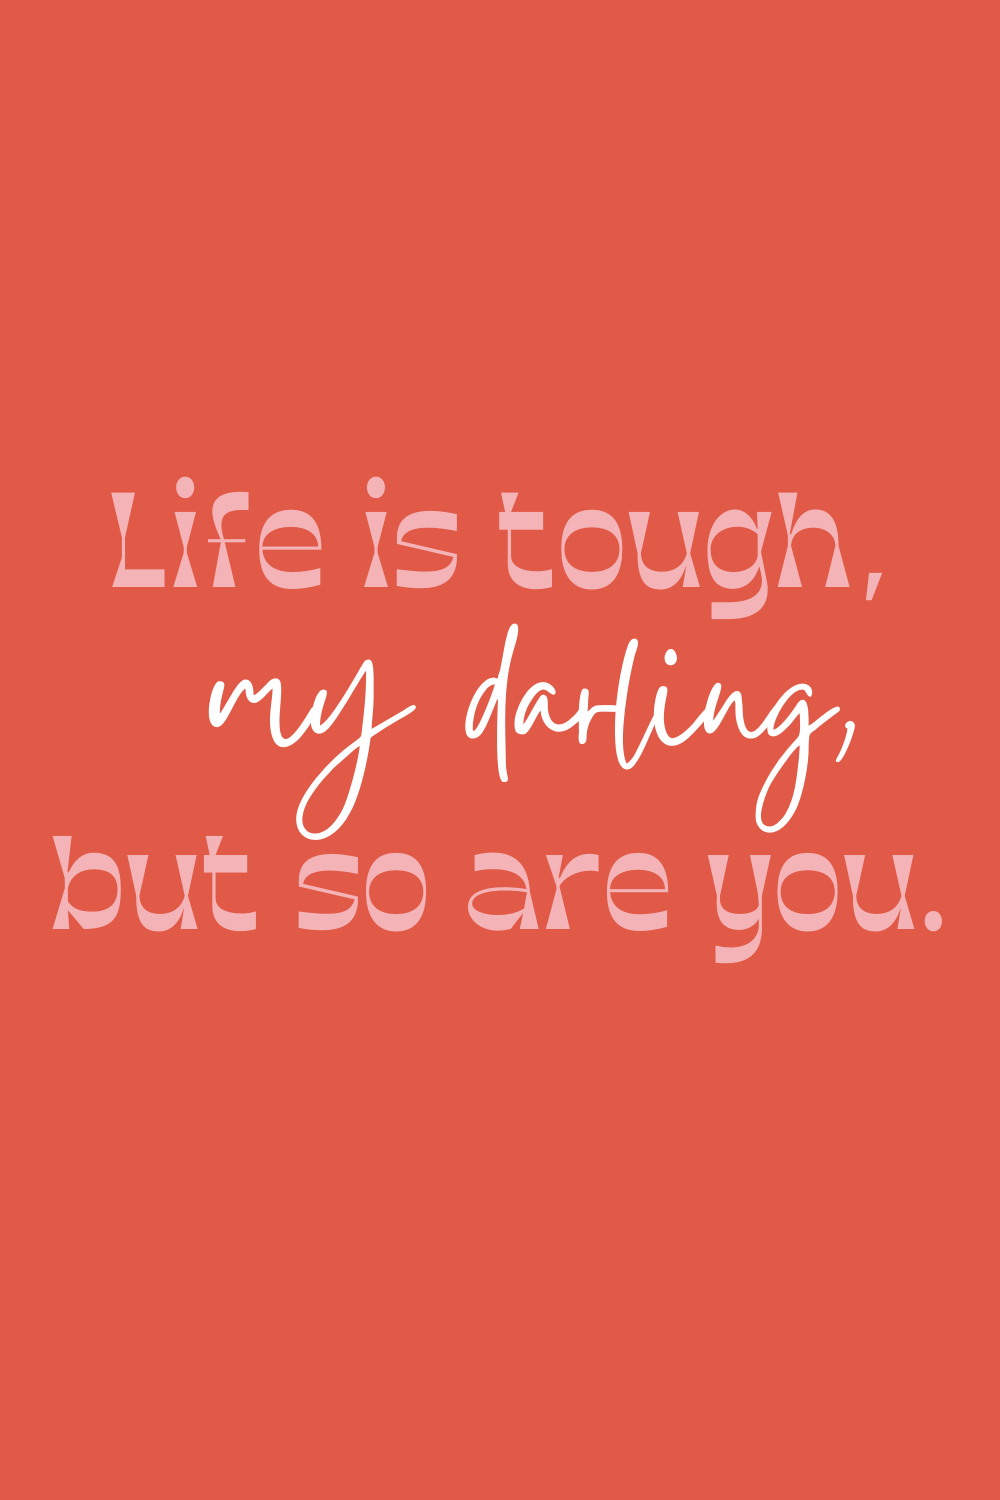 National Women's Day Quotes About Toughness